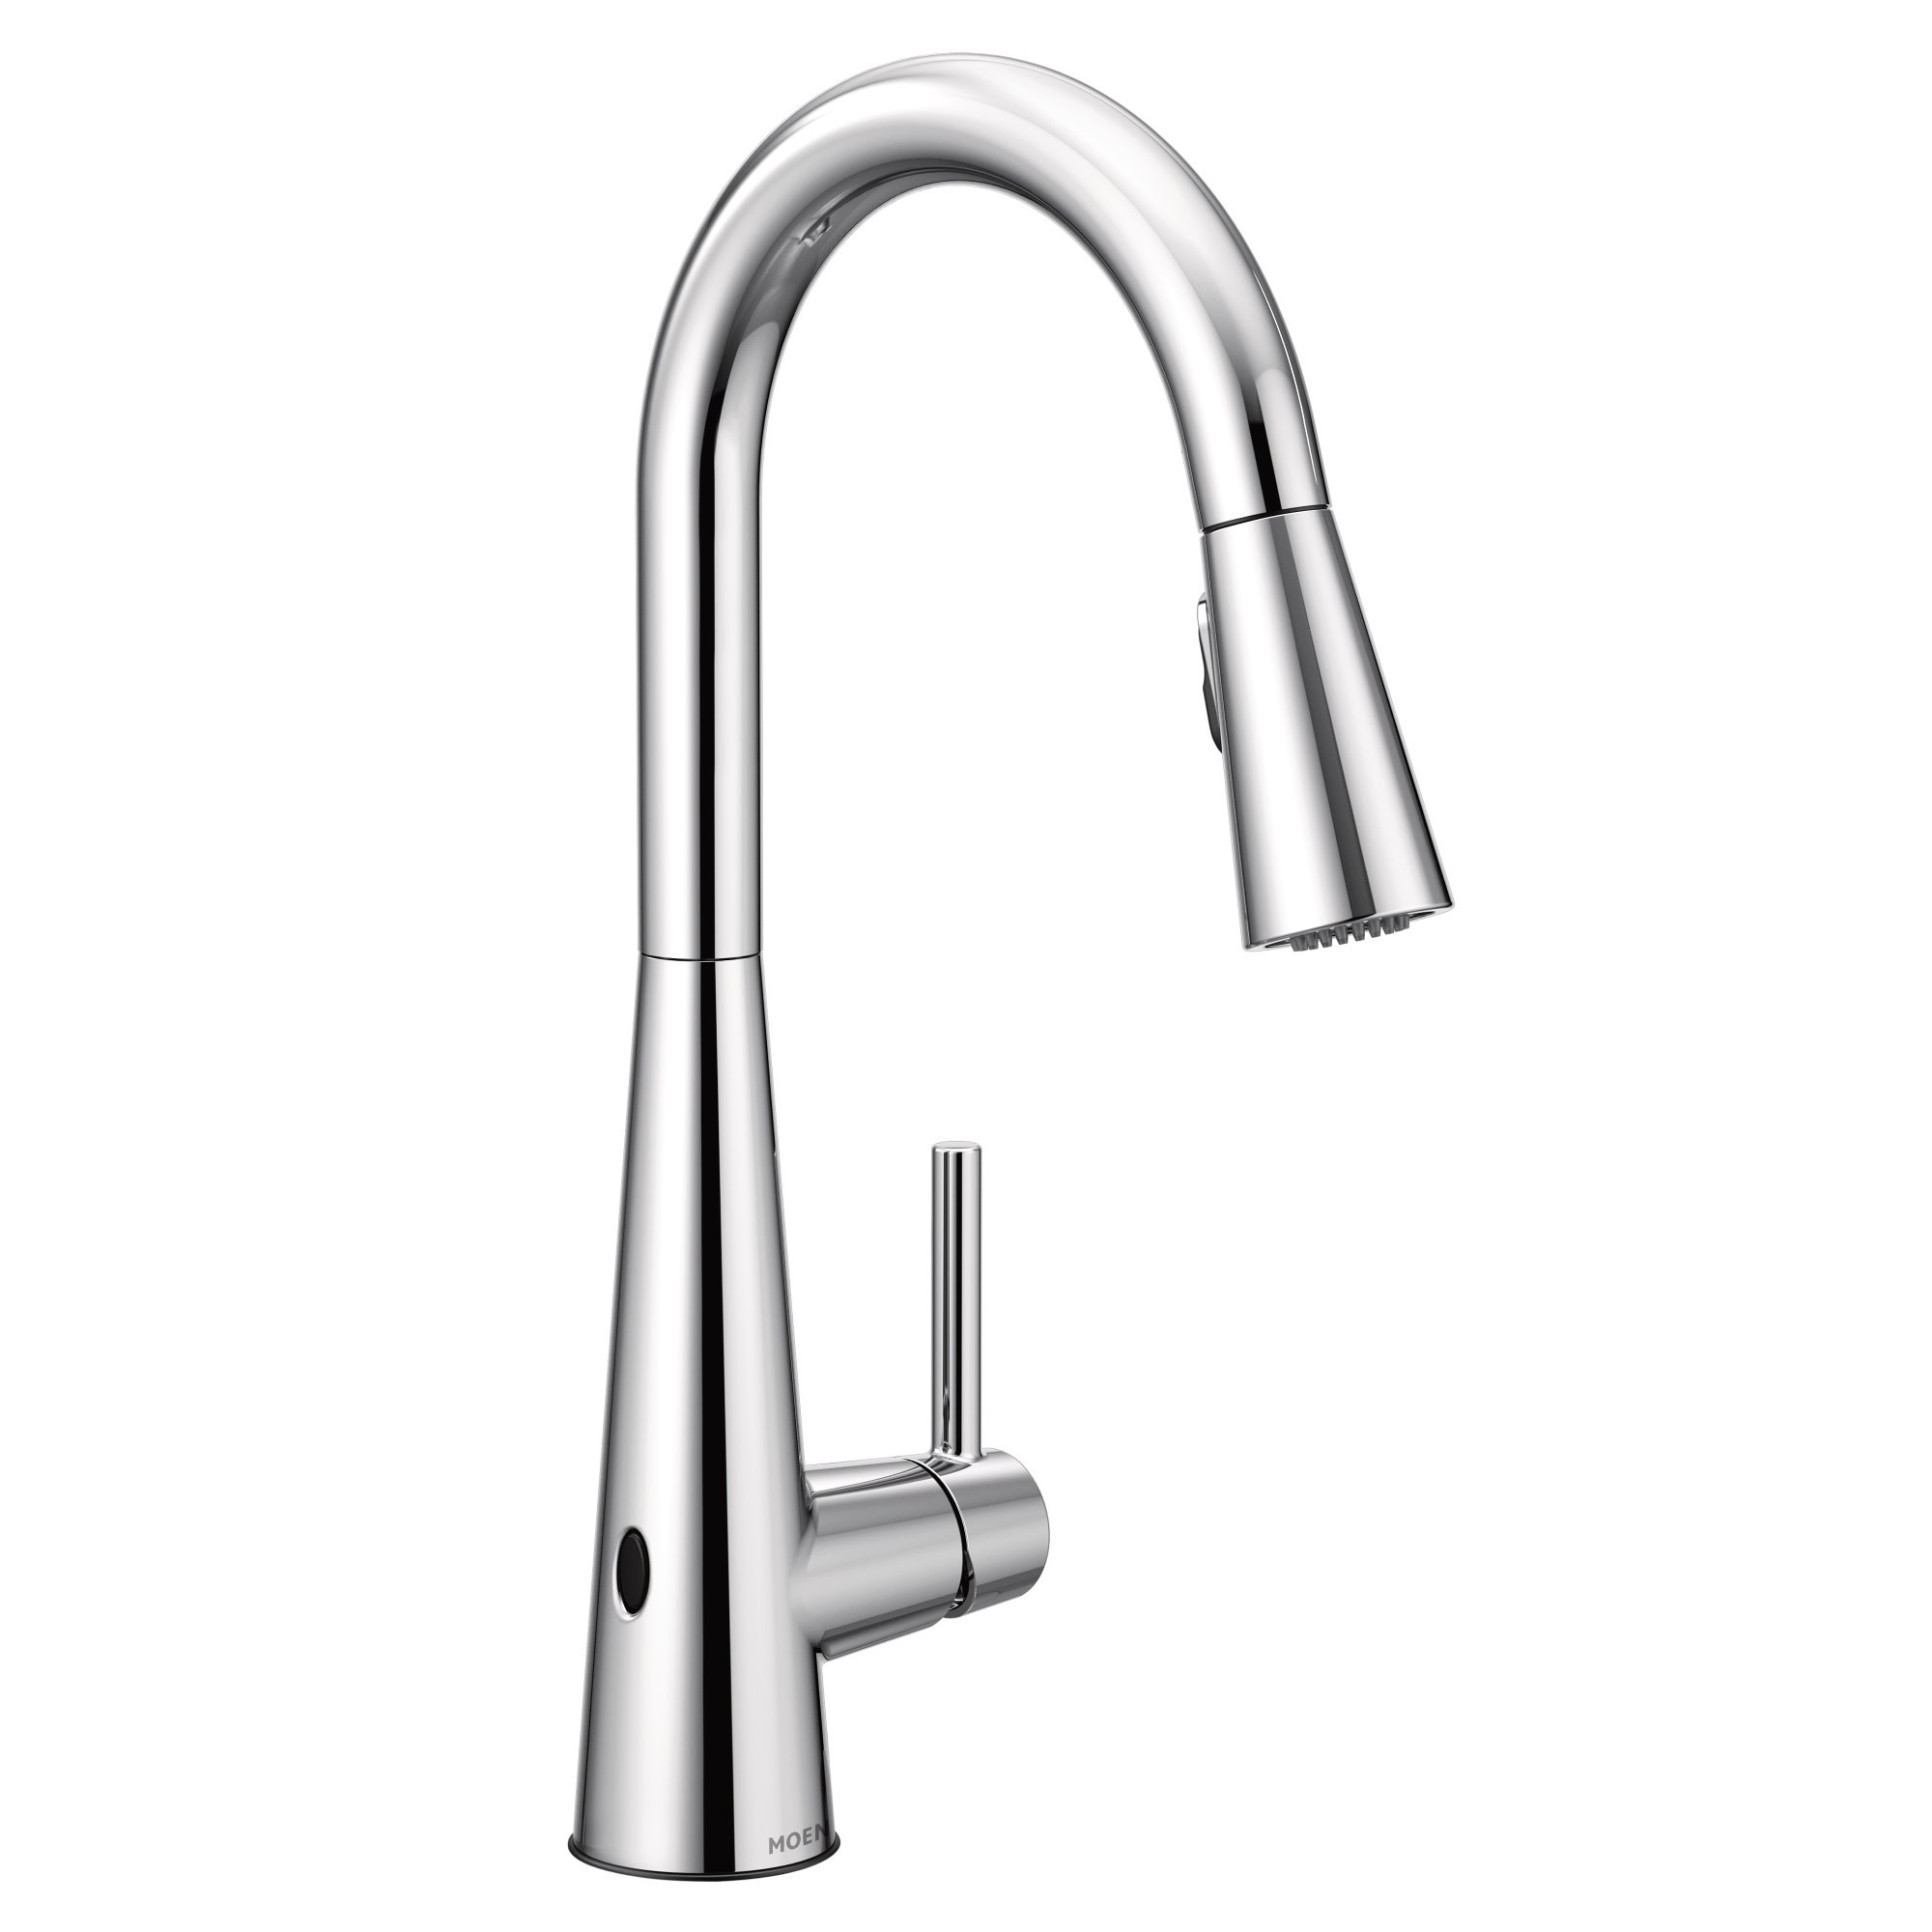 Moen 7864ew Sleek 1 5 Gpm Pull Down High Arc Kitchen Faucet With